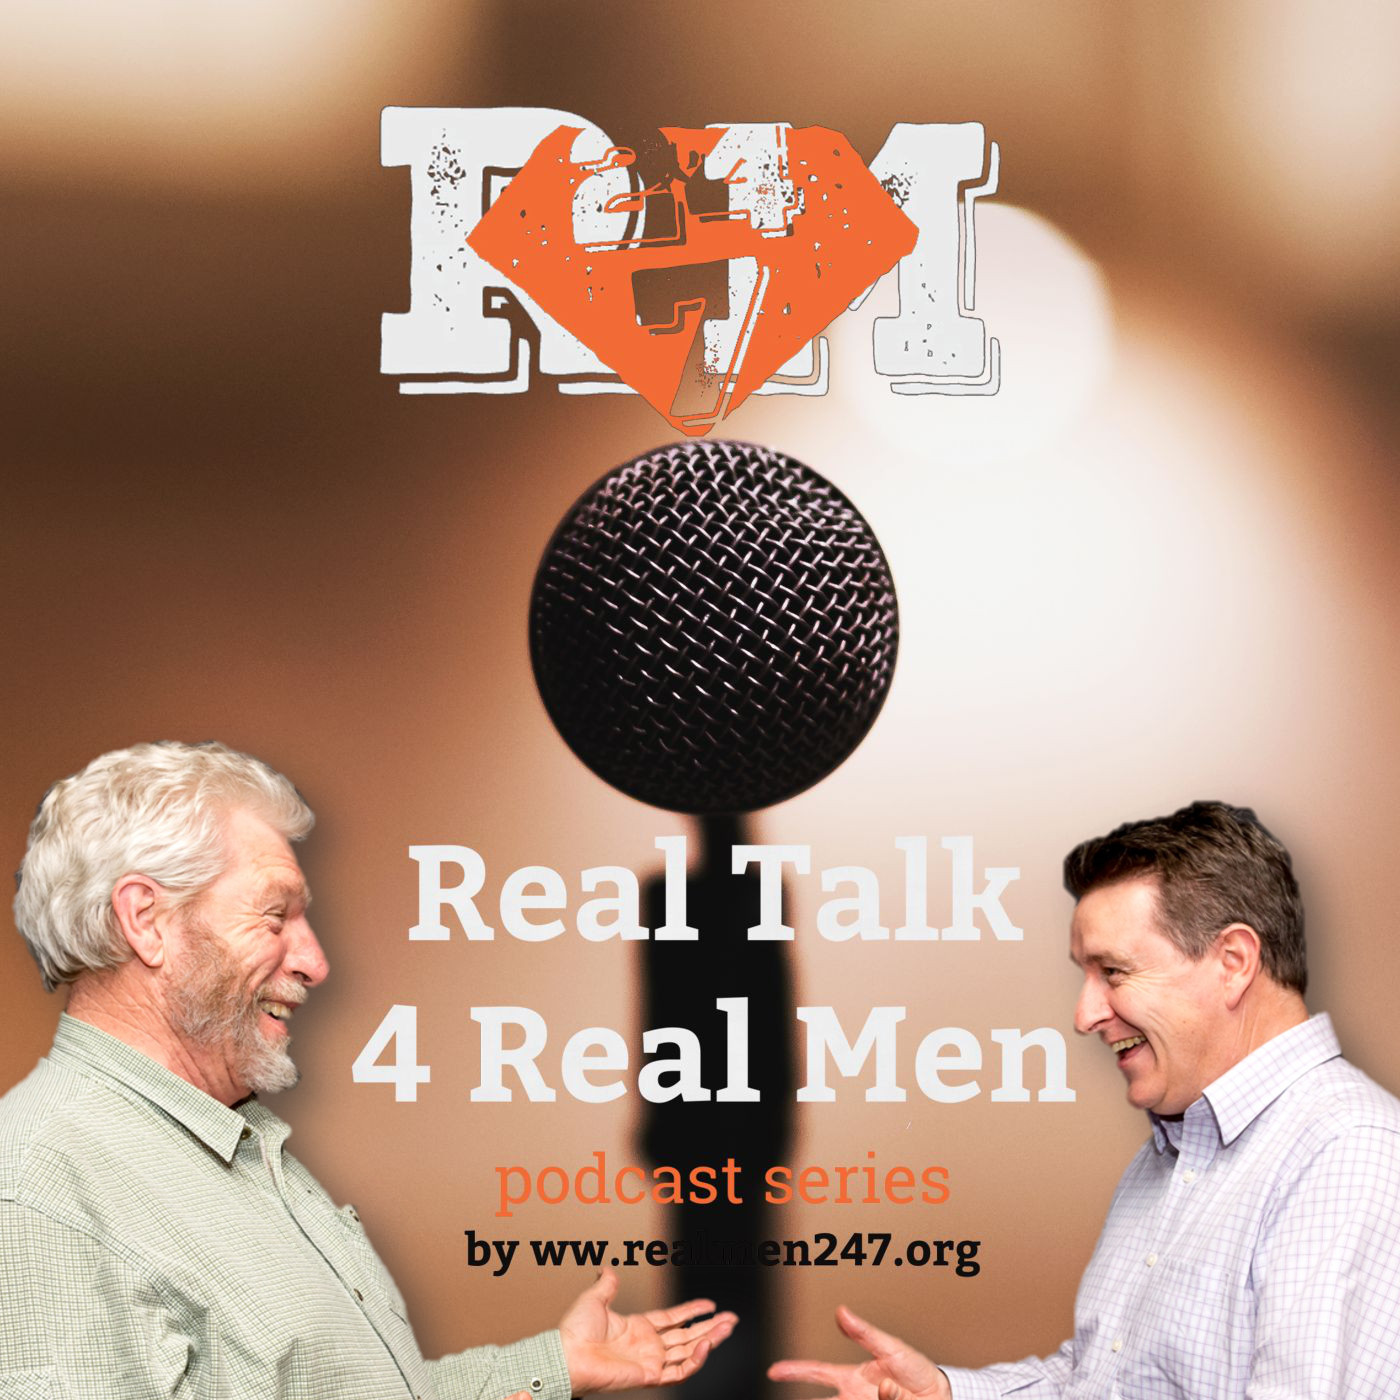 The Real Talk 4 Real Men Podcast